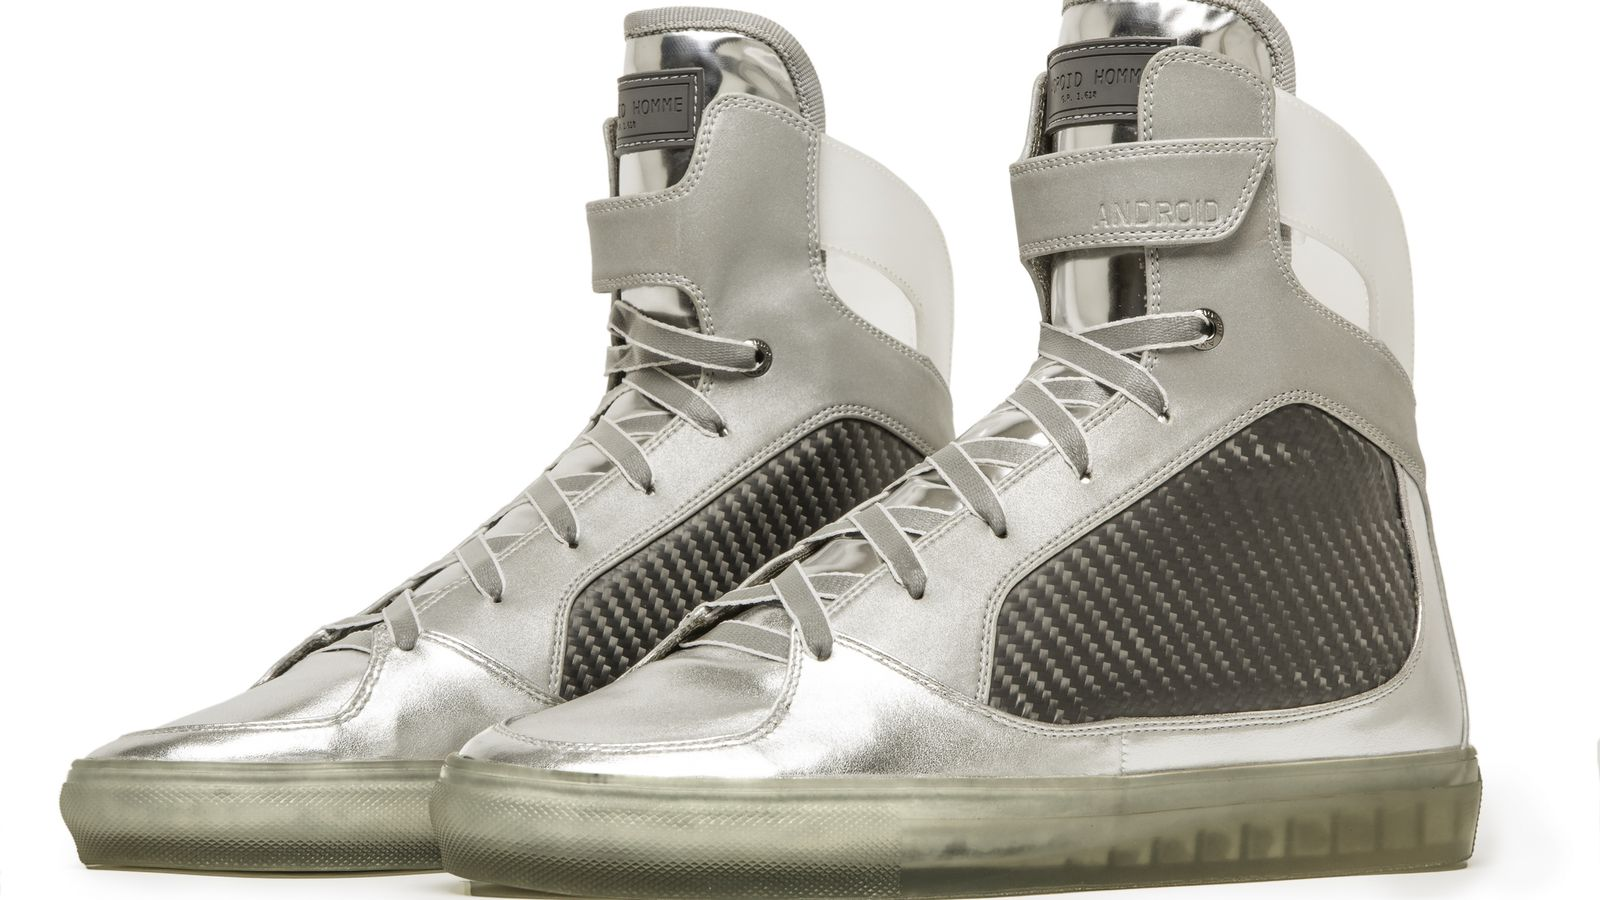 astronaut space boots - photo #11